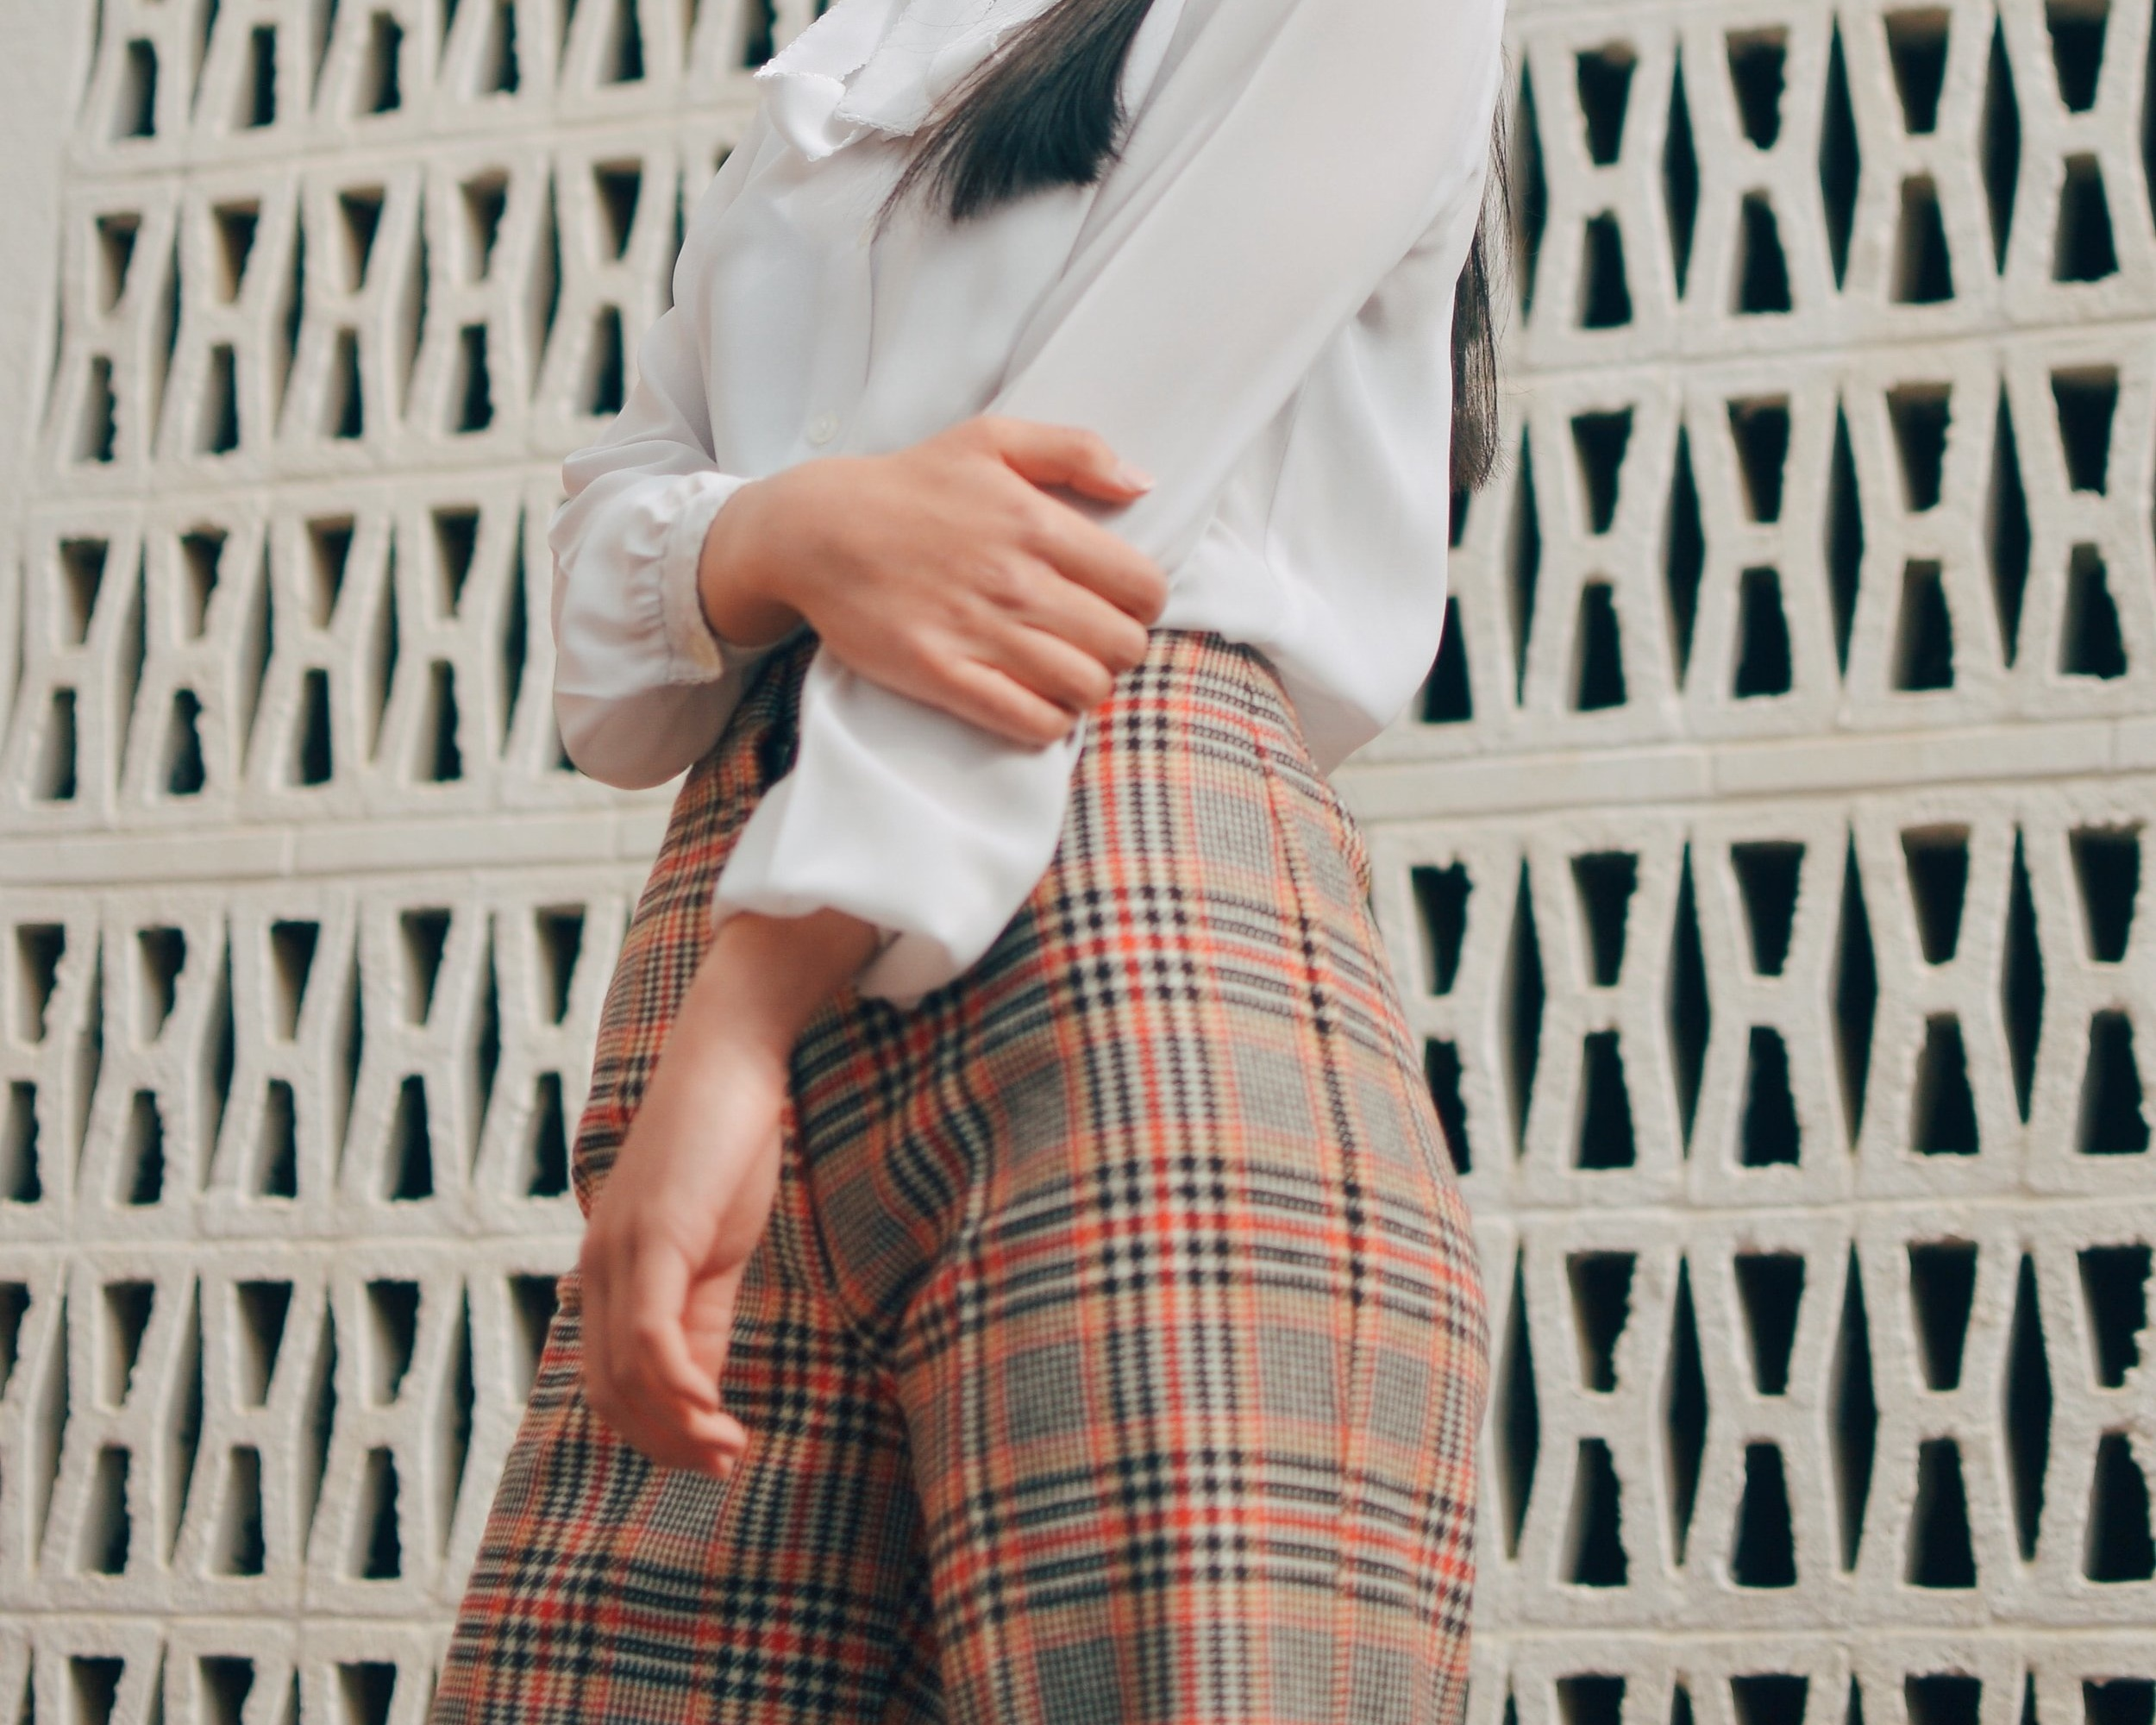 ARCHIVED FASHION IS THROWING US BACK TO THE 90's - Brace for a resurgence of archived fashions from the 90s with plaids, bucket hats, tiny bags, and statement headbands. Earlier decades are getting a spotlight too, with flared pants and the 80s menswear silhouettes. This is another indication that mixes of vintage and modern is a major theme this year.